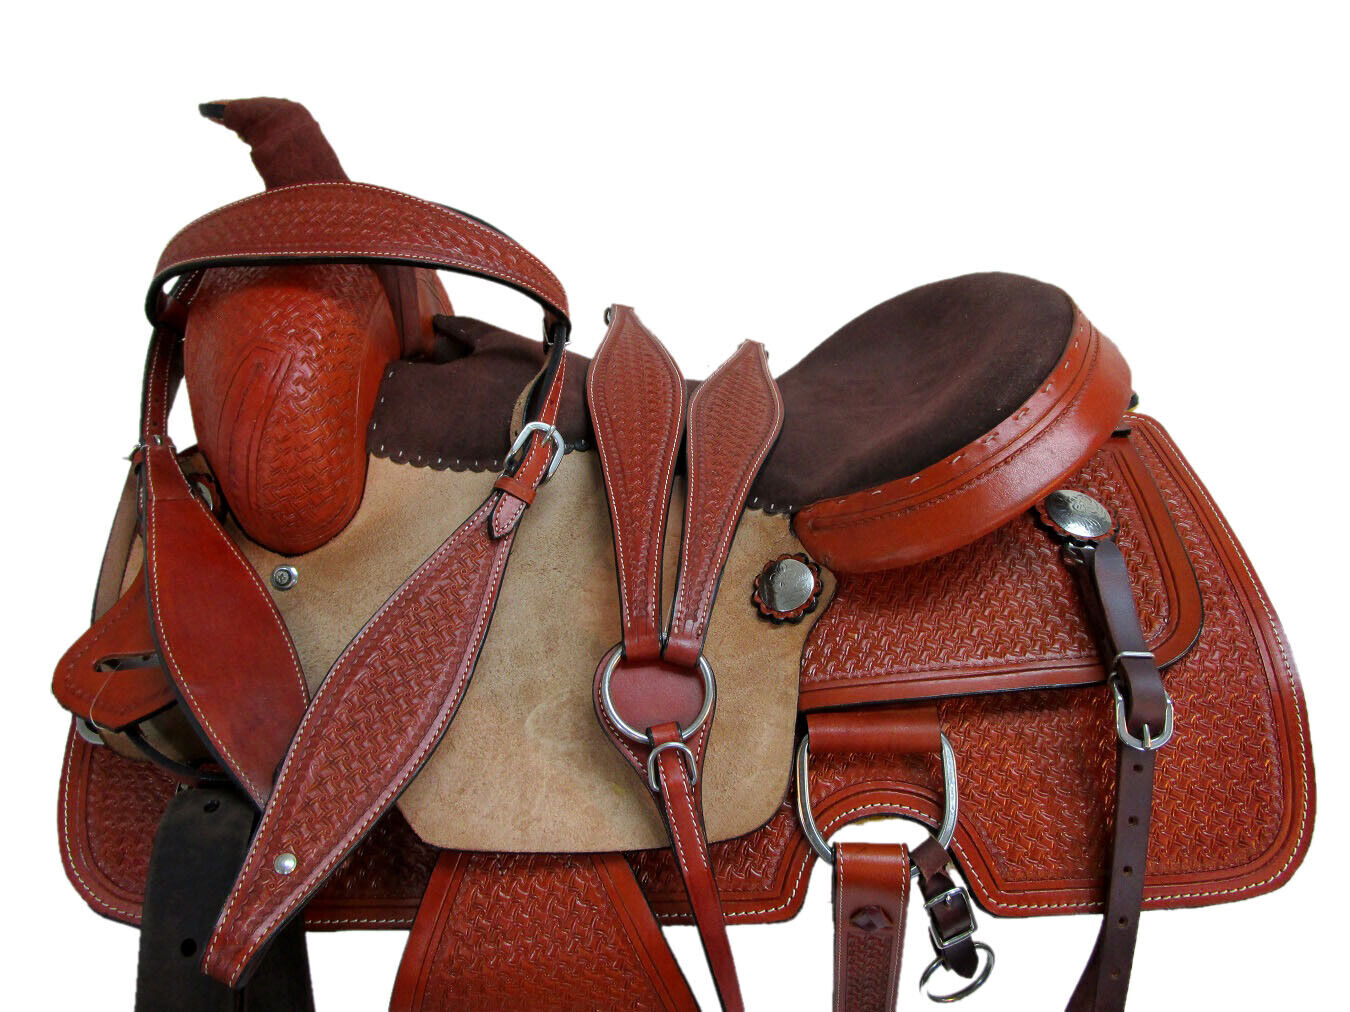 COWBOY WESTERN SADDLE TOOLED LEATHER PLEASURE TRAIL HORSE ROPING RANCH SET 16 17